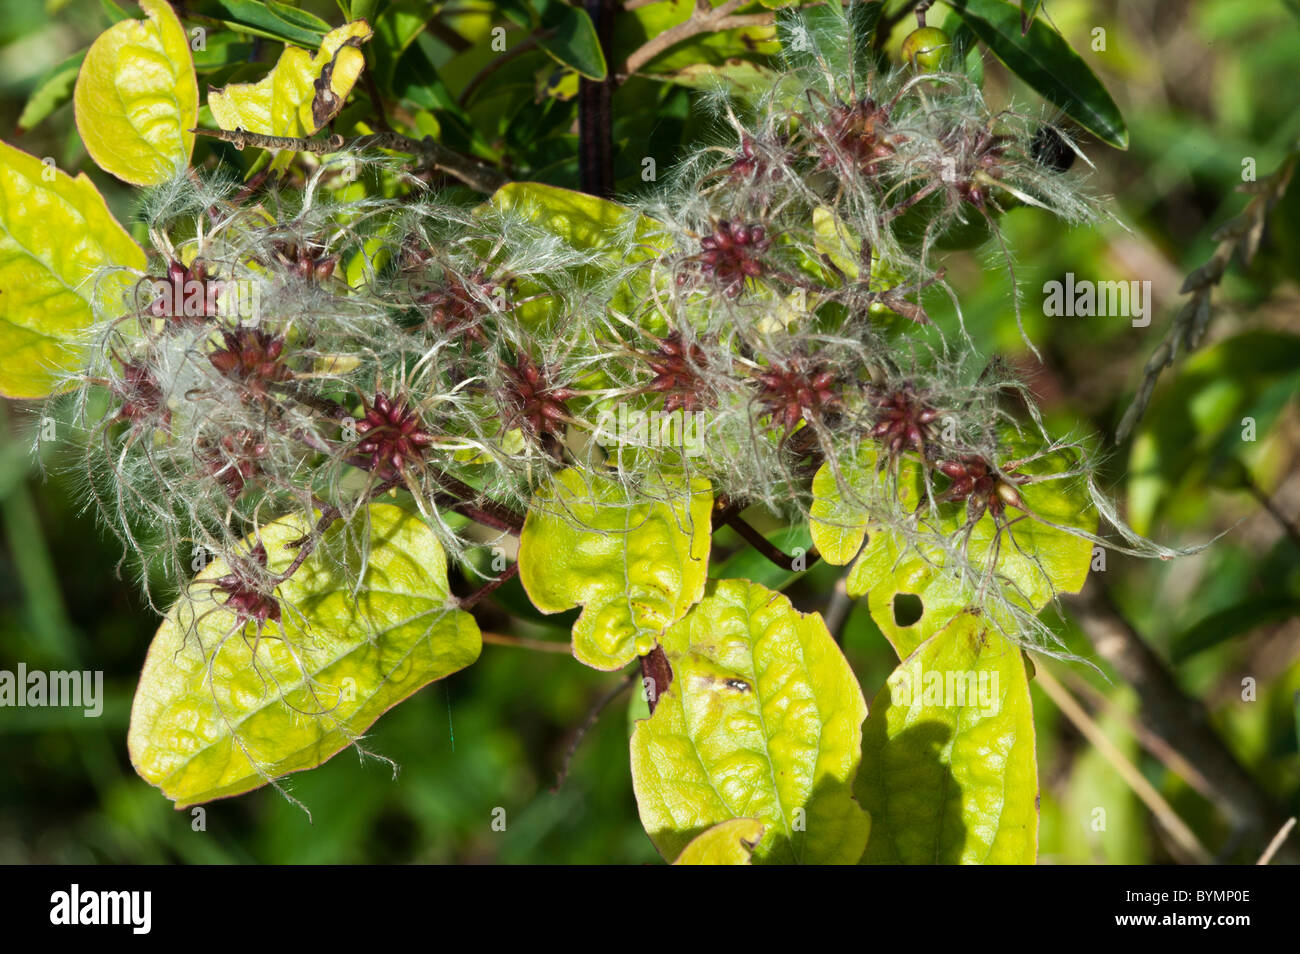 Traveller's-joy or Old Man's Beard (Clematis vitalba), seed heads - Stock Image